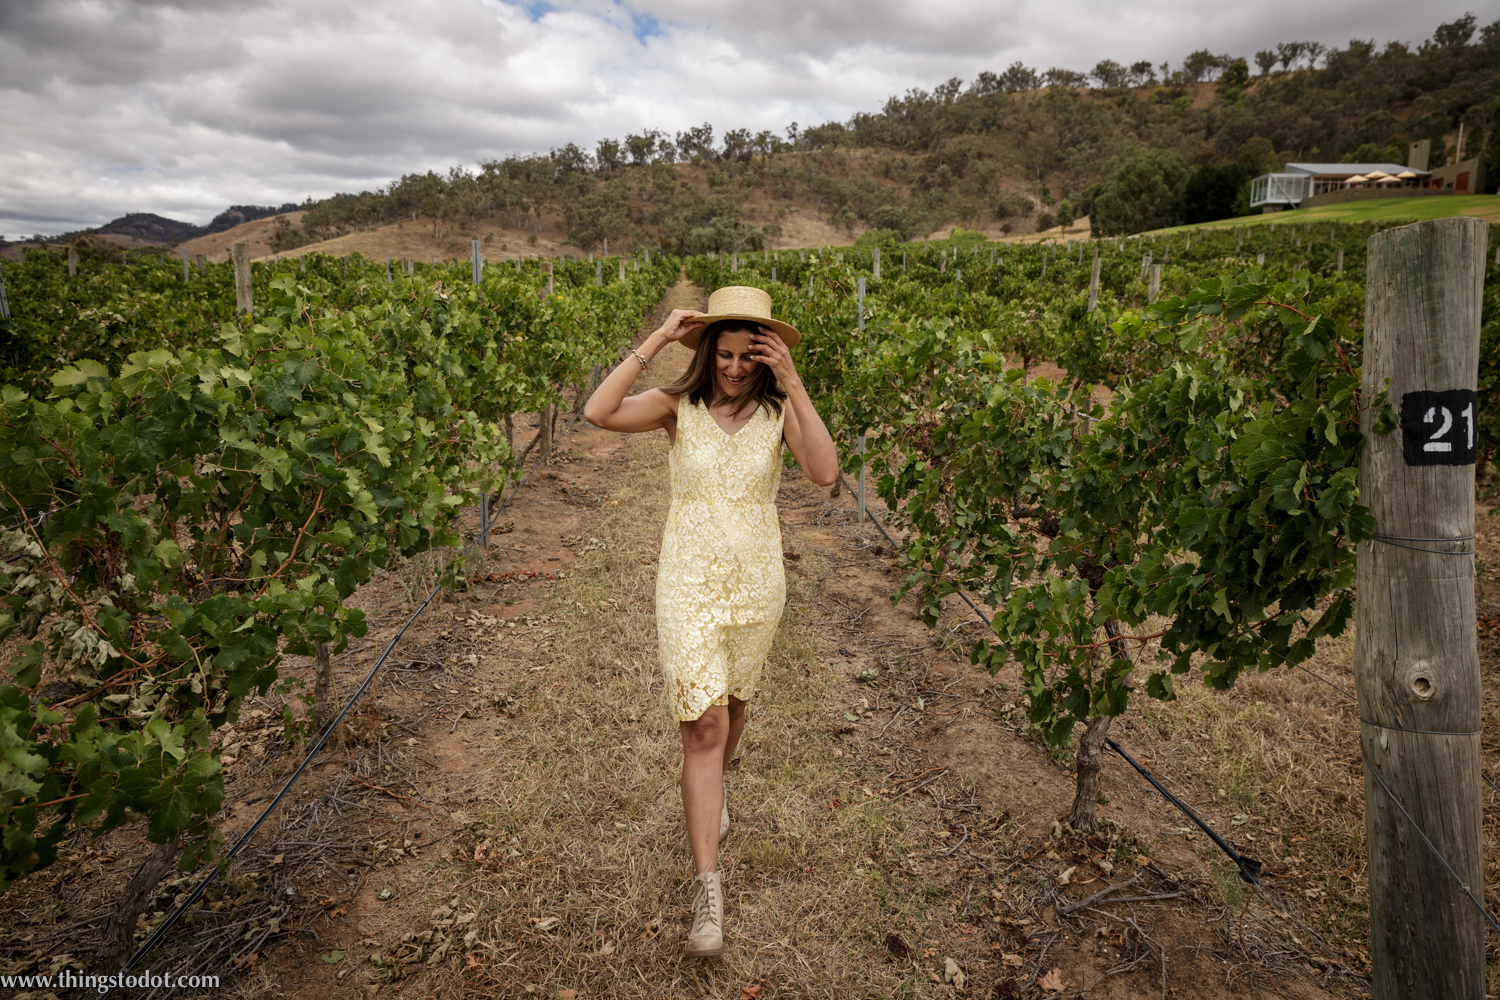 Logan Wines, Mudgee vineyards, Mudgee NSW, Australia. Photo:Noel Dawson, Image©www.thingstodot.com.